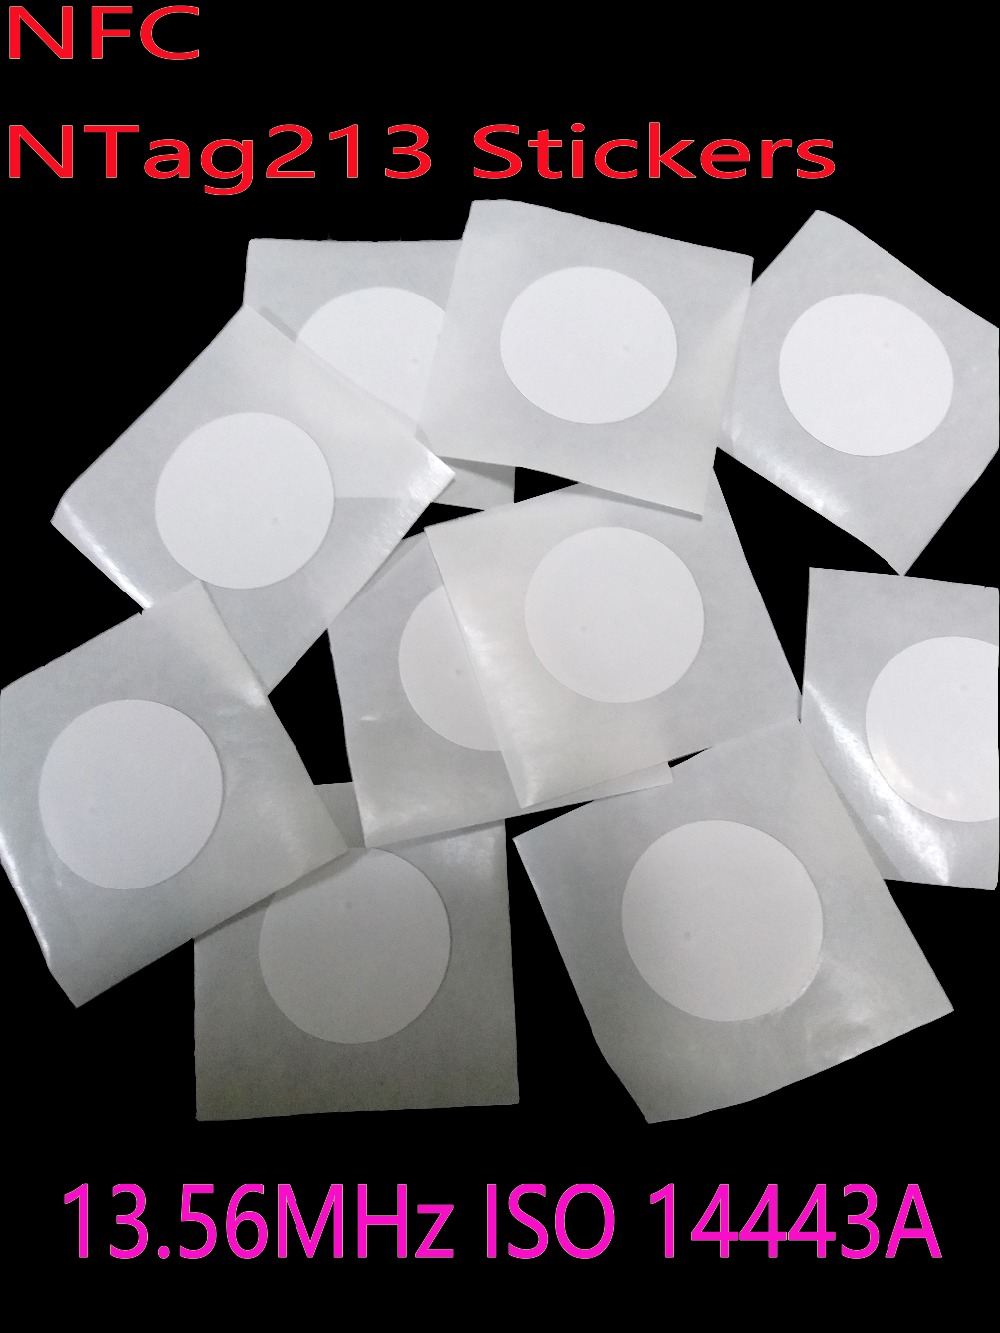 50pcs/Lot Ntag213 NFC TAG Sticker 13.56MHz ISO14443A Ntag 213 NFC Sticker Universal Lable RFID Tag for all NFC enabled phones pro team long sleeve cycling jersey women 2017 ropa ciclismo mujer winter fleece mountan bike wear clothing maillot cycling set